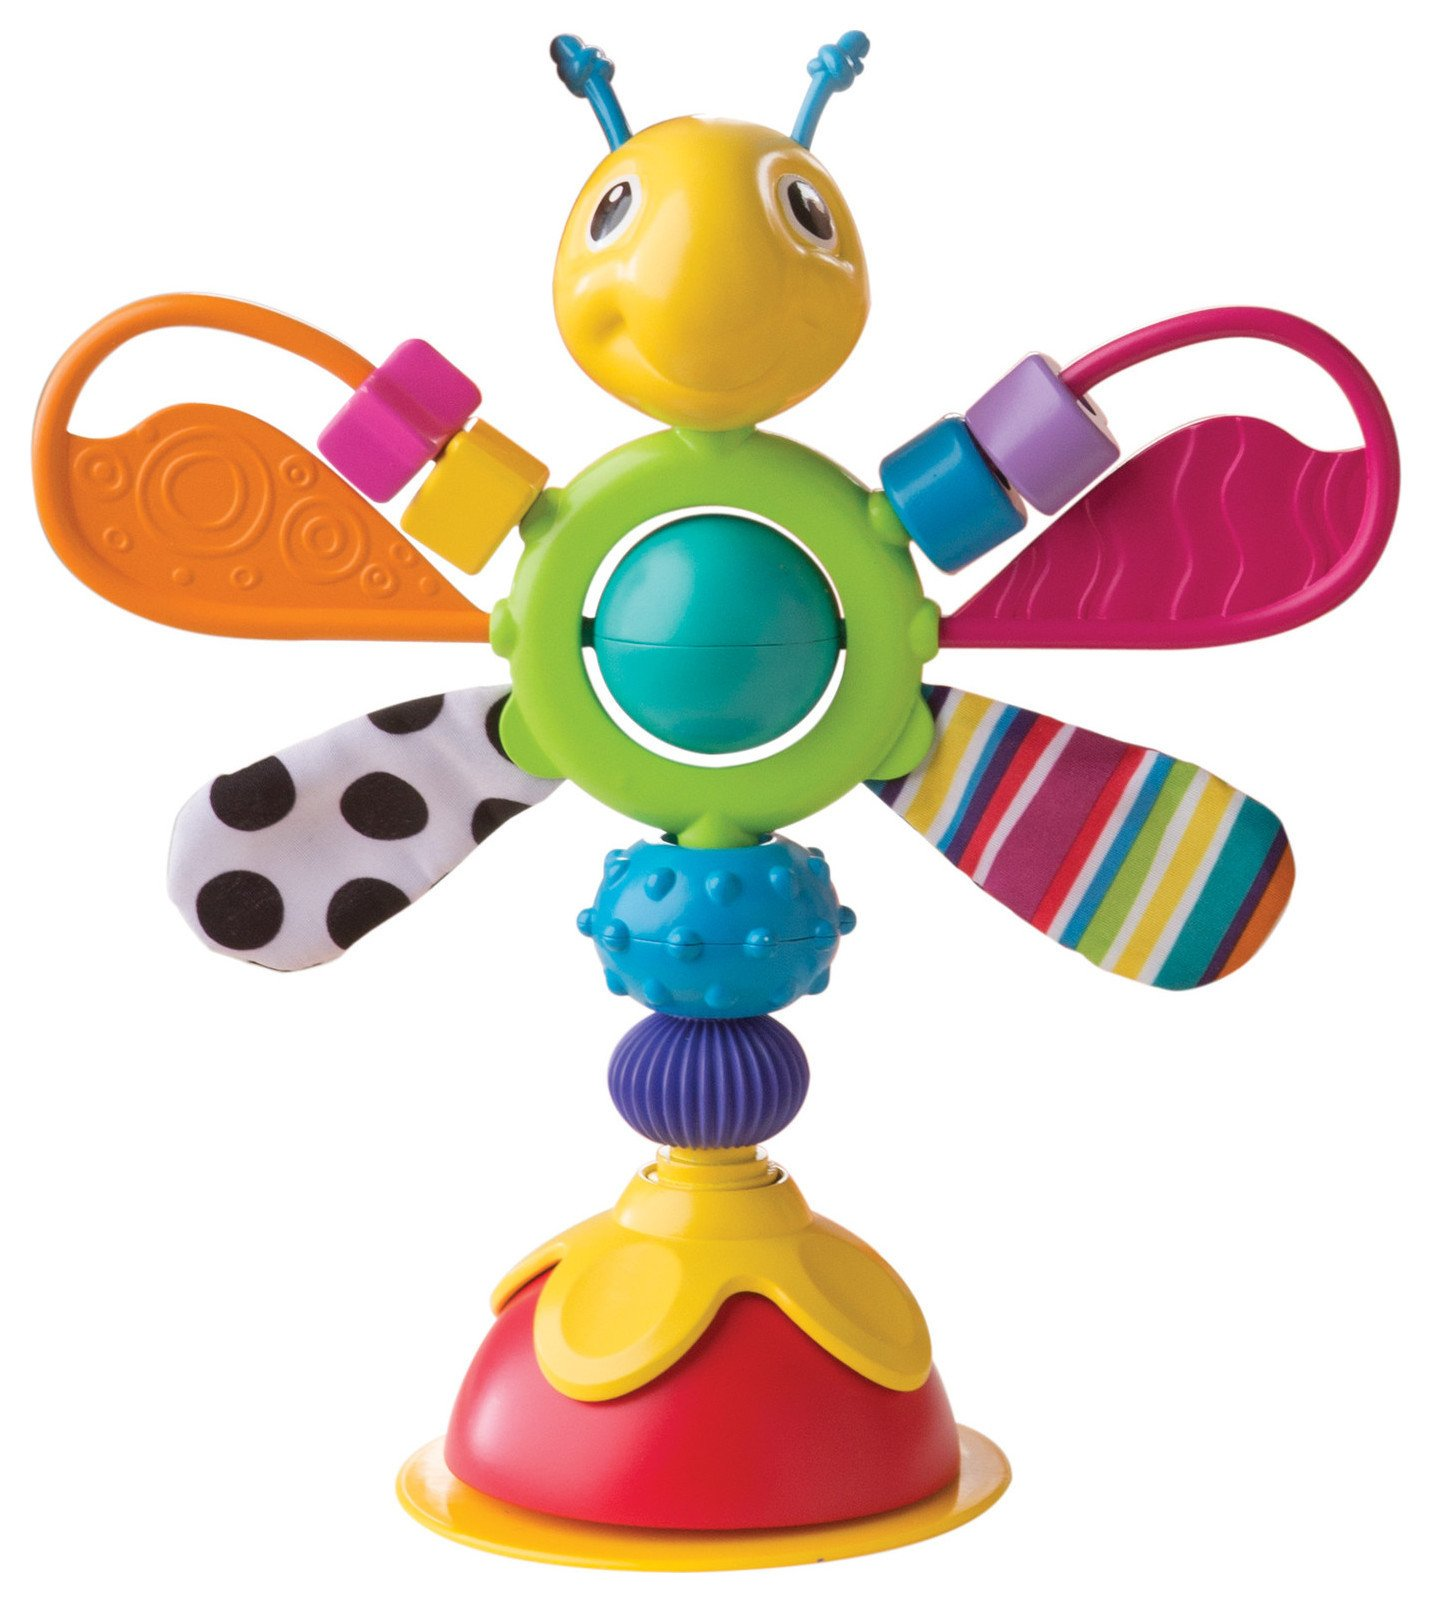 tomy-lamaze-freddie-the-firefly-table-top-toy